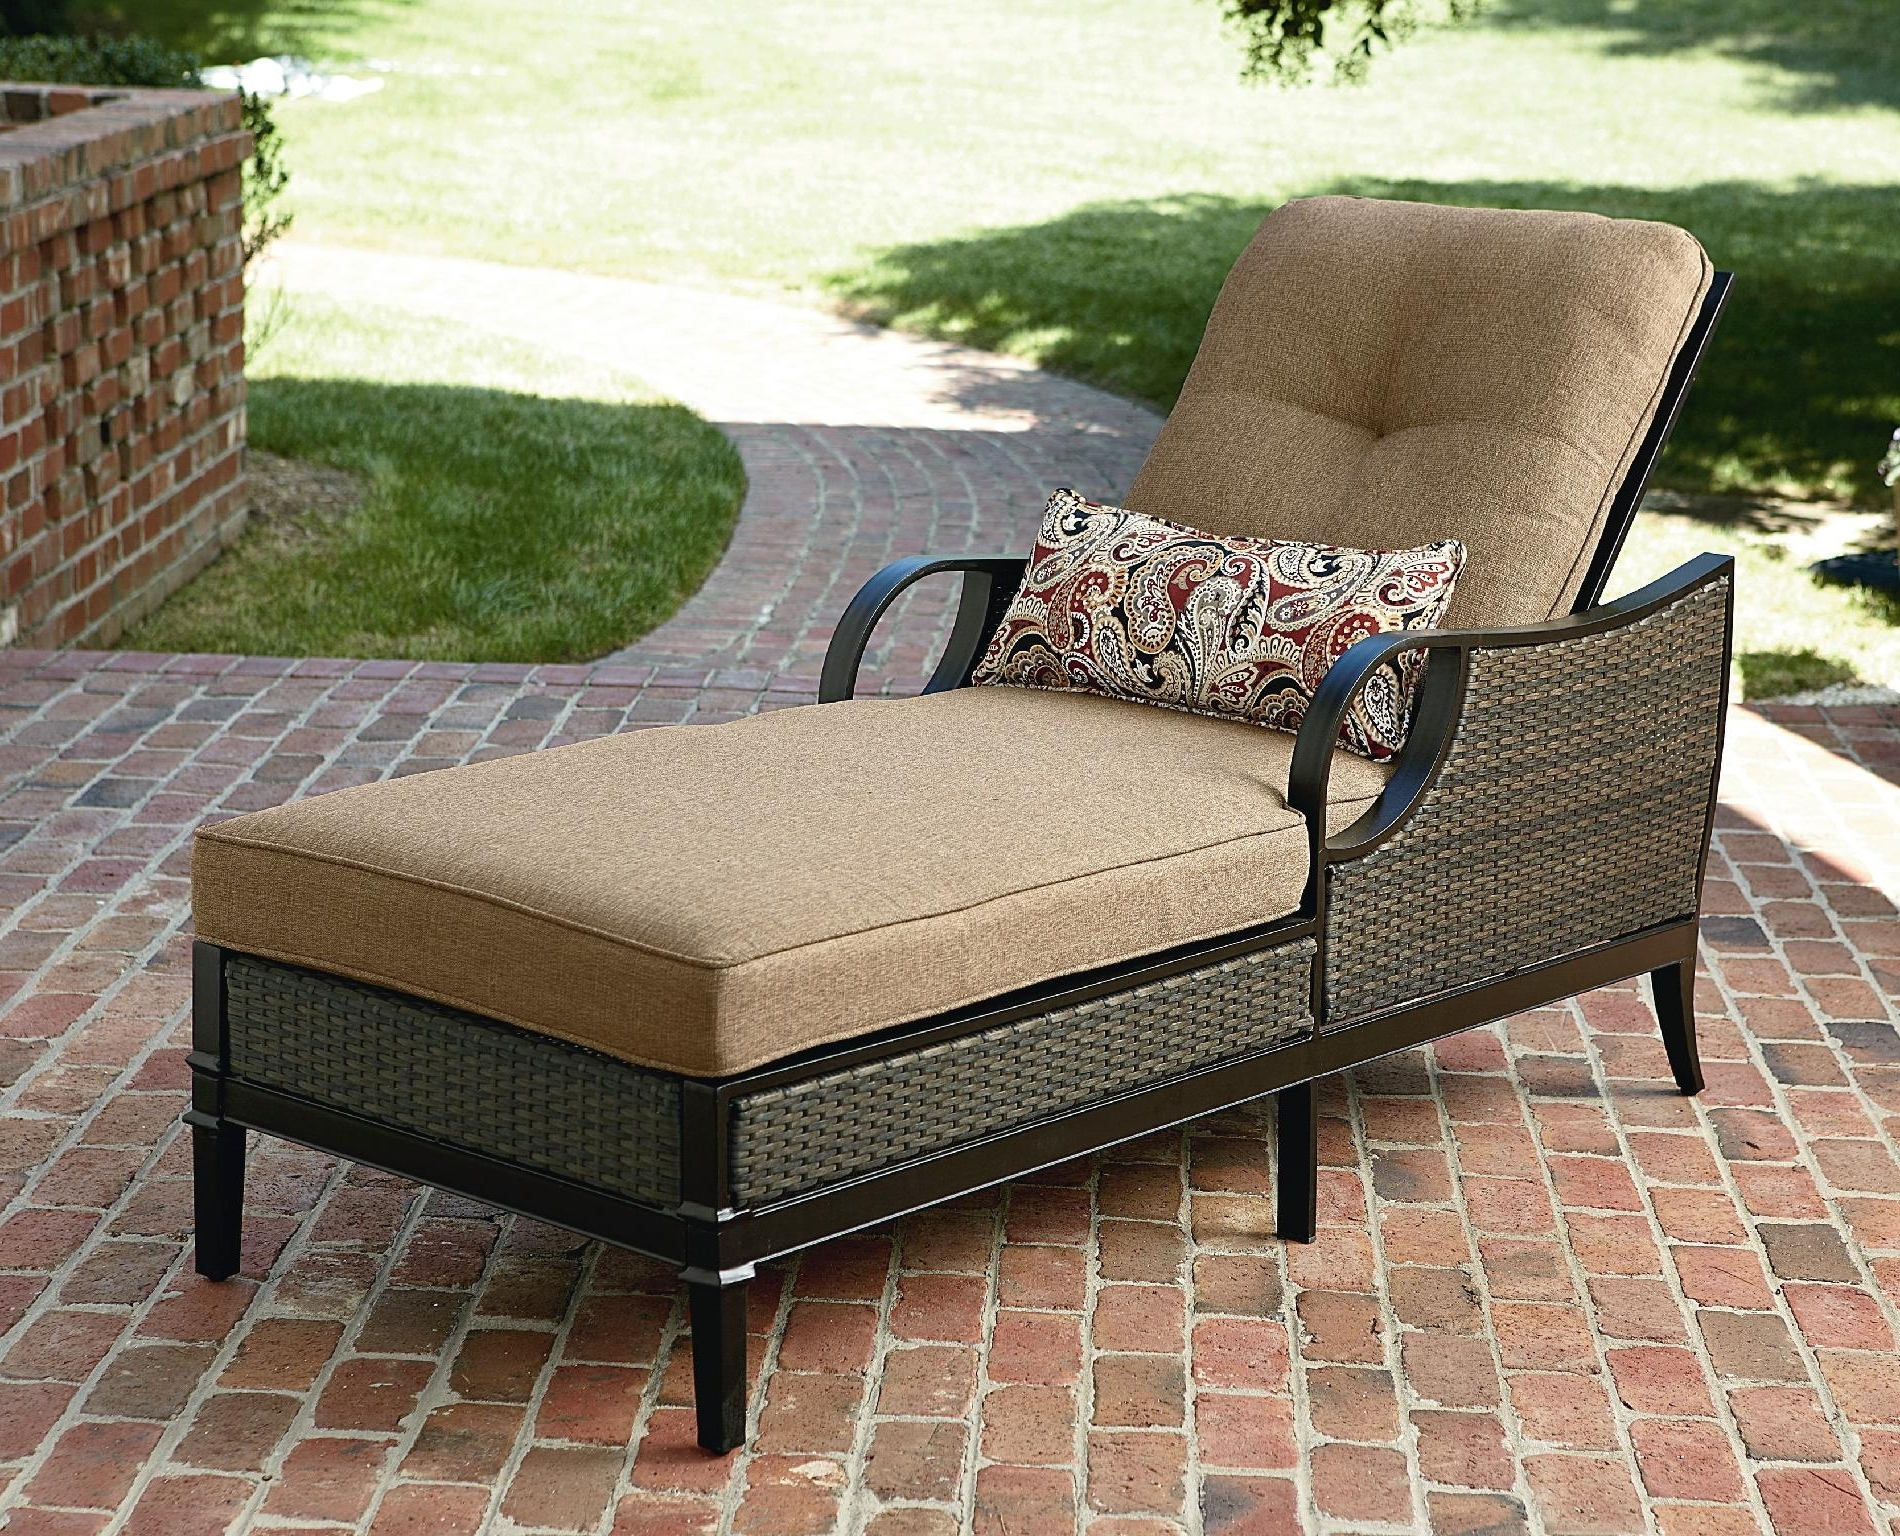 Outdoor Chaise Lounge Chairs With Arms Inside Trendy Chaise Lounge Chairs For Patio • Lounge Chairs Ideas (View 10 of 15)